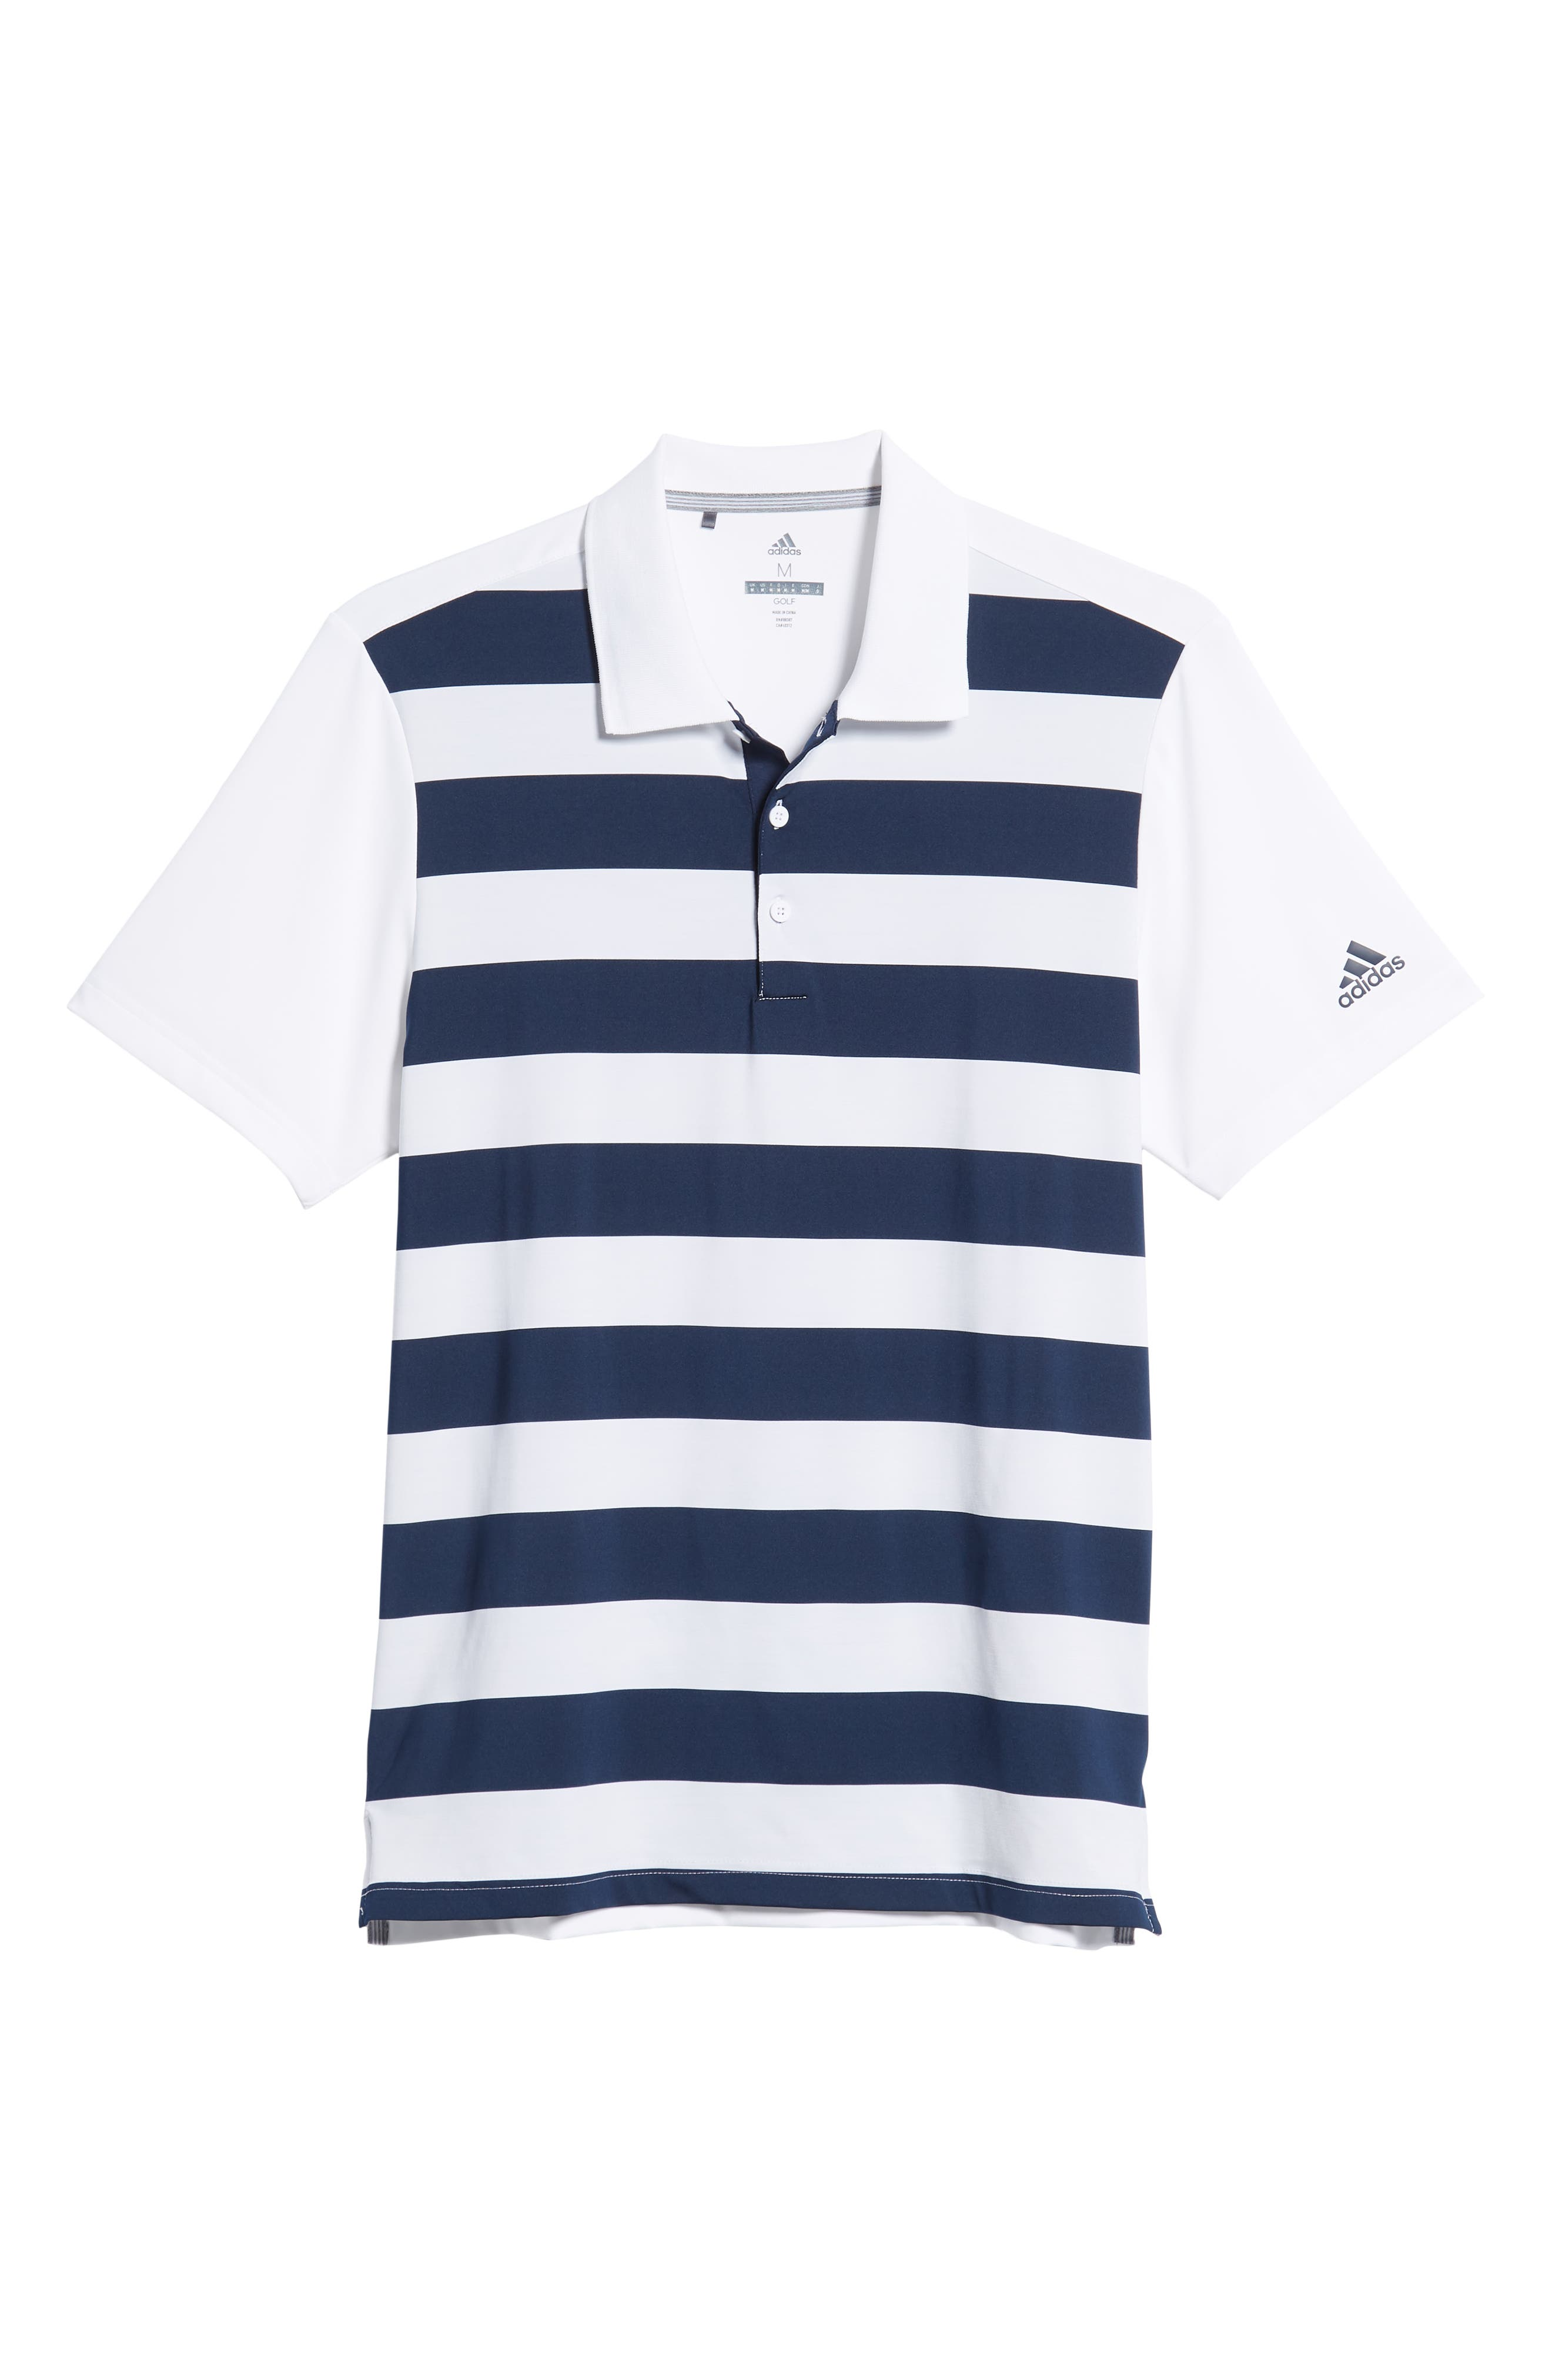 Ultimate Rugby Performance Polo,                             Alternate thumbnail 6, color,                             400